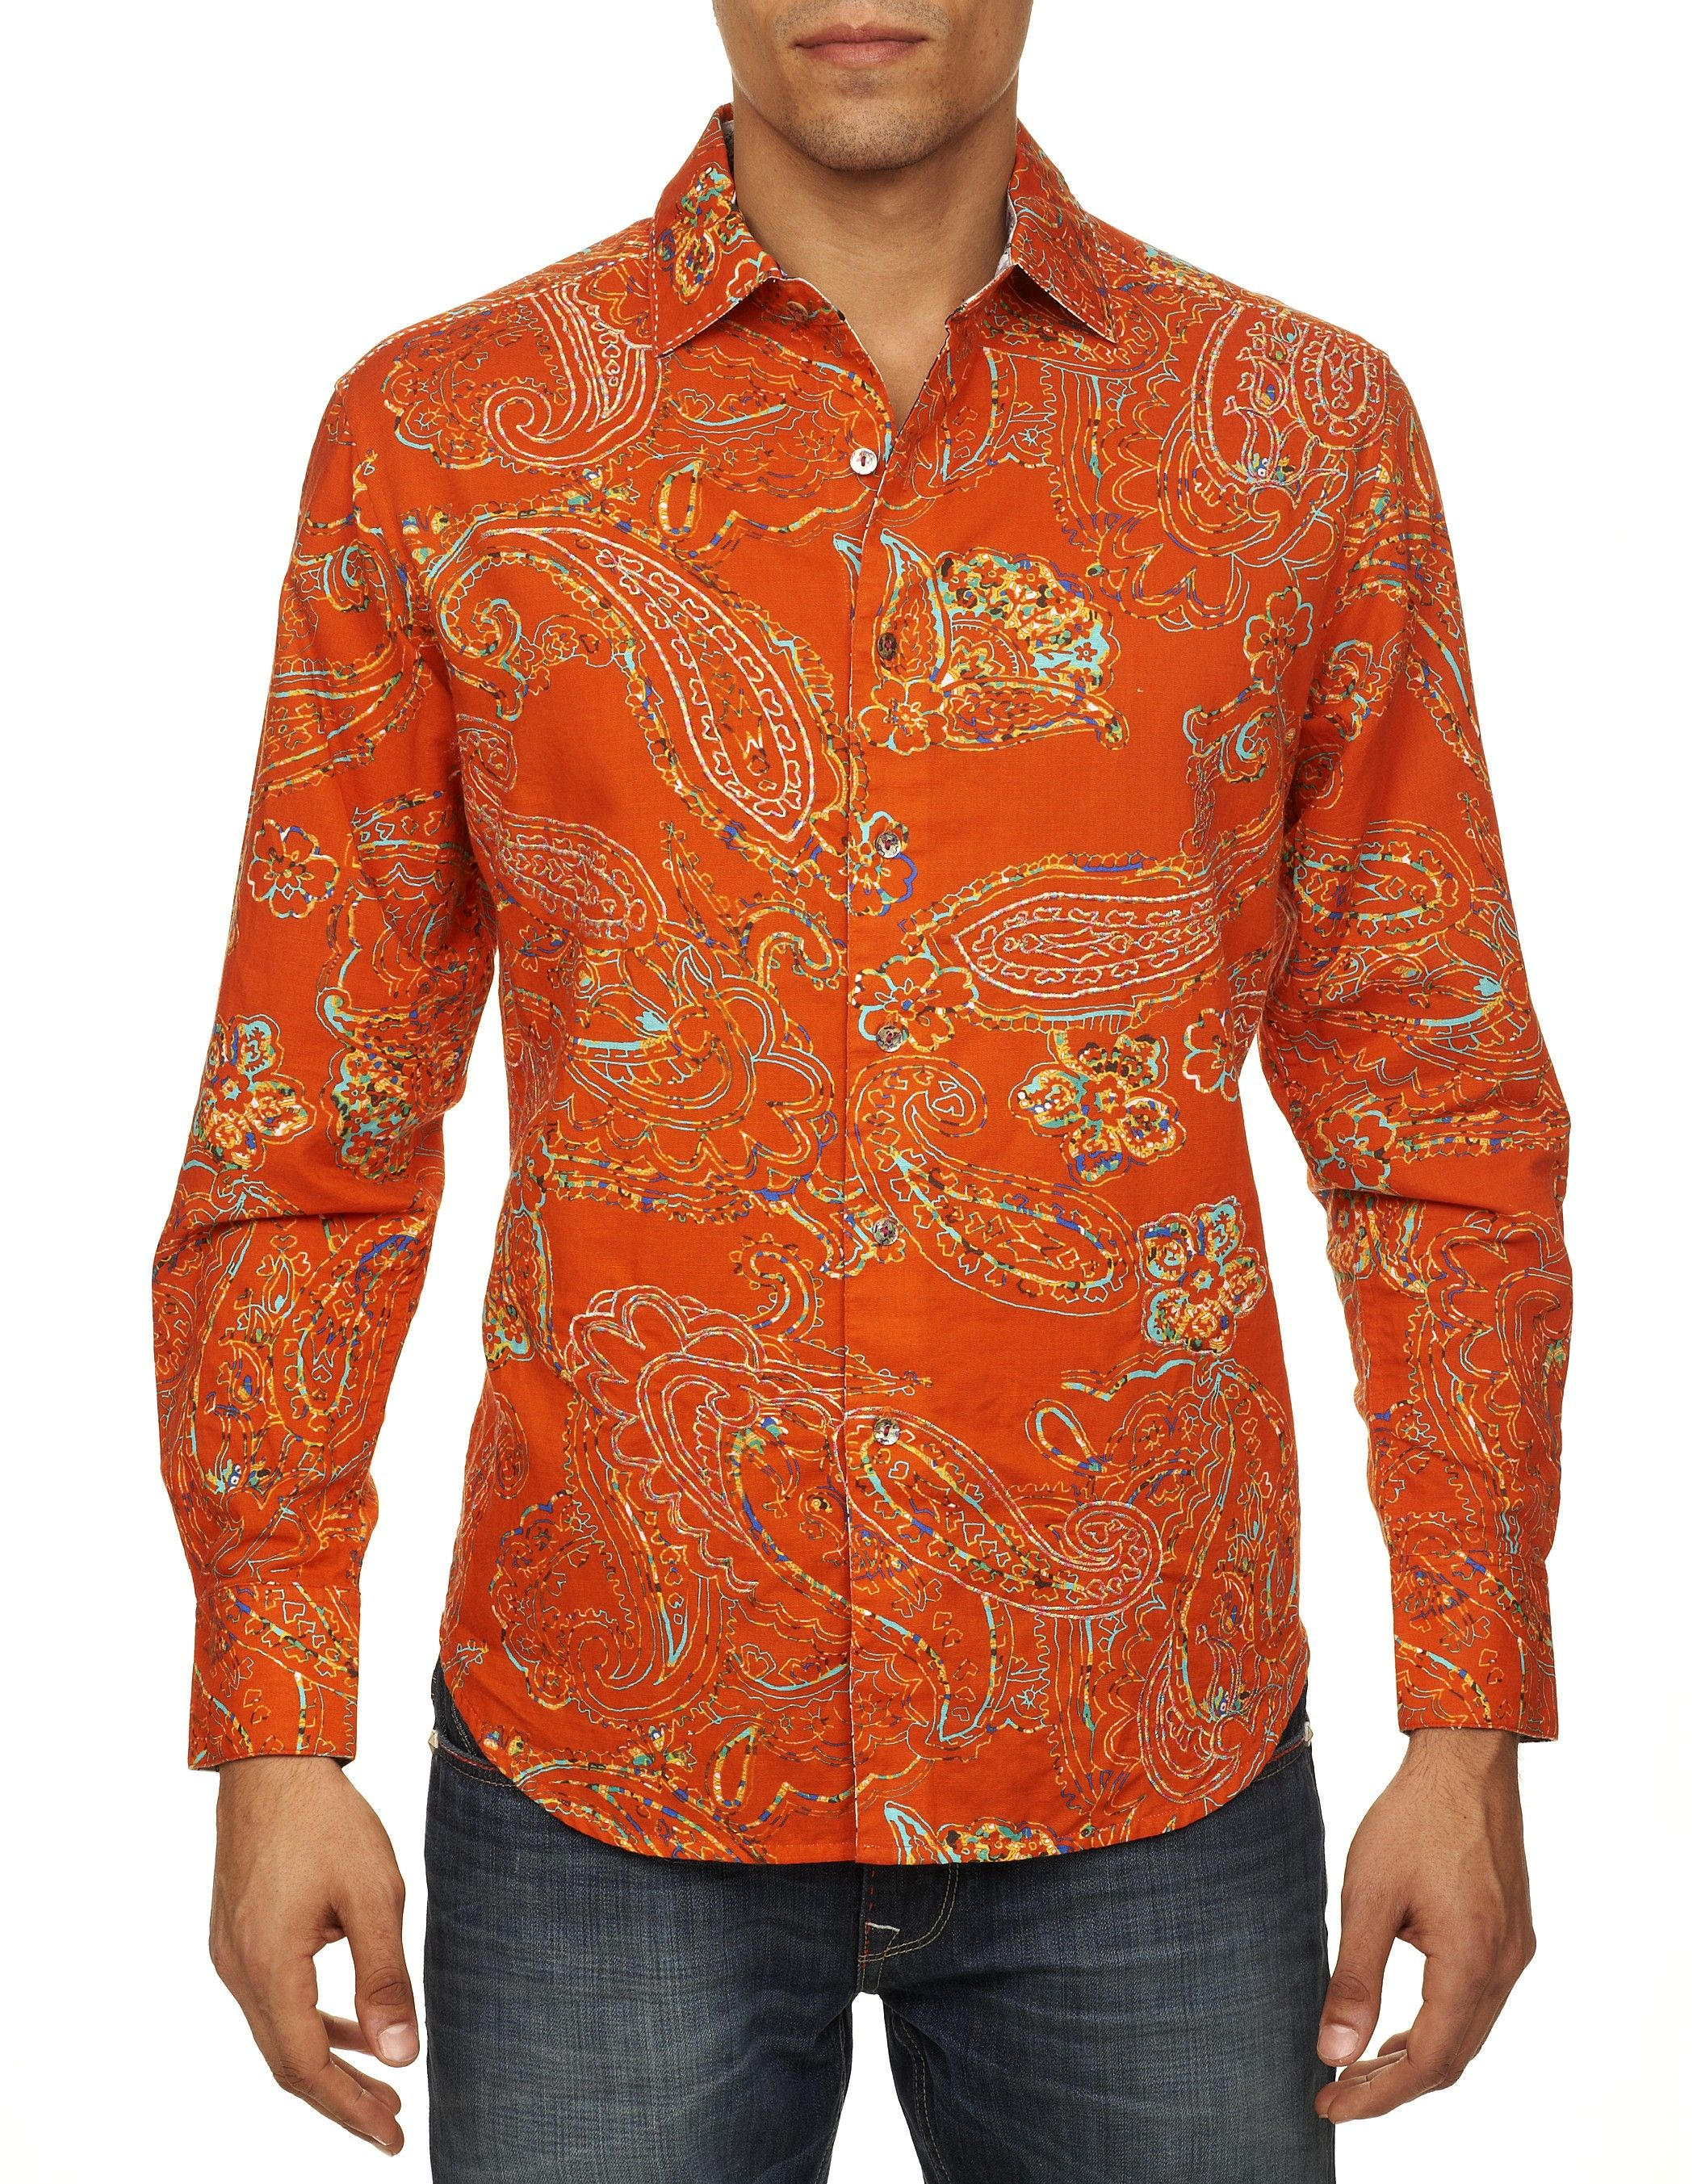 RS131060. The vibrant hue of this long sleeve sport shirt, coupled with the colorful paisley embroidered design, is an instant eye-catcher. Features contrast Old English print inside of neckband and quirky design on inside cuffs.